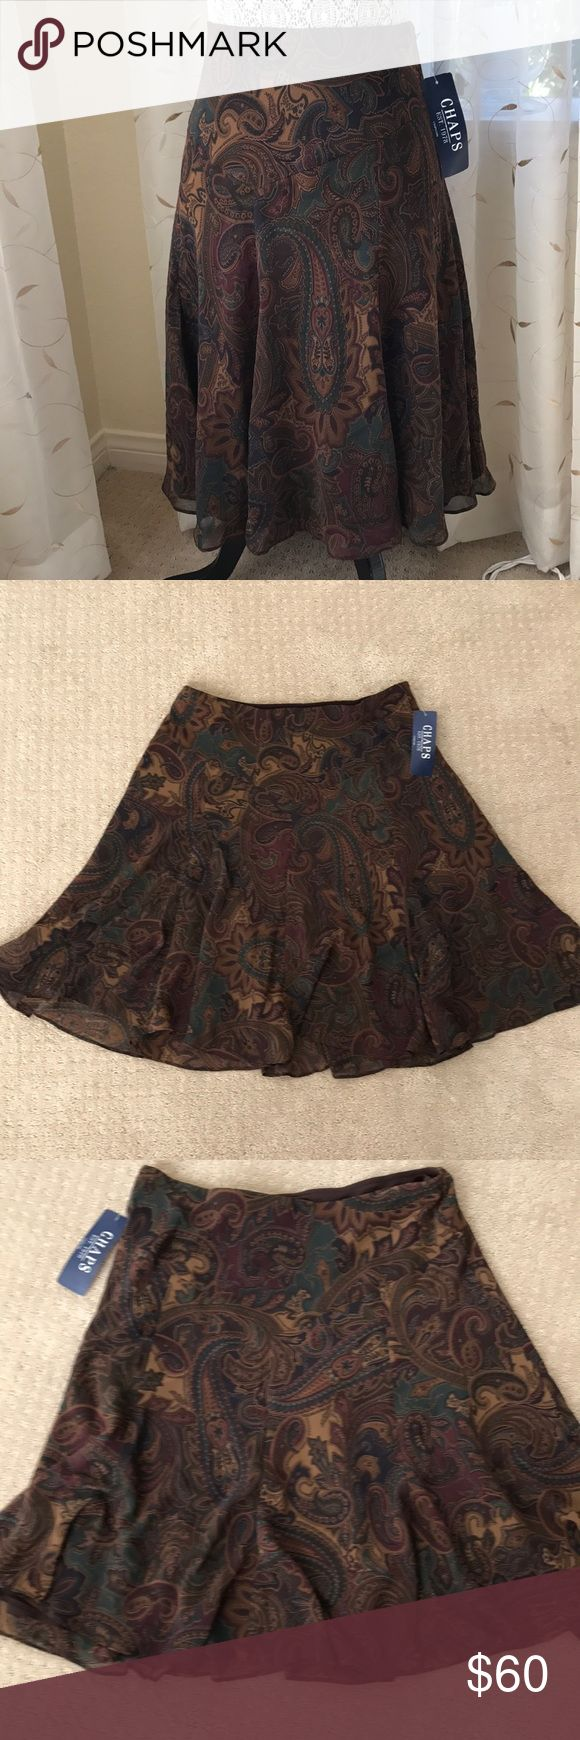 "Chaps ""Oak Street"" brown paisley flared skirt sz M Elegant Chaps ""Oak Street"" brown paisley flared skirt in ladies size medium, brand new with tags. Although the tag states size medium it runs on the large size. I typically wear size 10 & it fits a tad loose. Concealed elasticized waist band measures 16"" across lying flat, length is 24"". This is a gorgeous fully lined  paisley with brown, wine, golden tan, violet & teal. Although delicate in appearance it is well made 100% polyester & can be…"